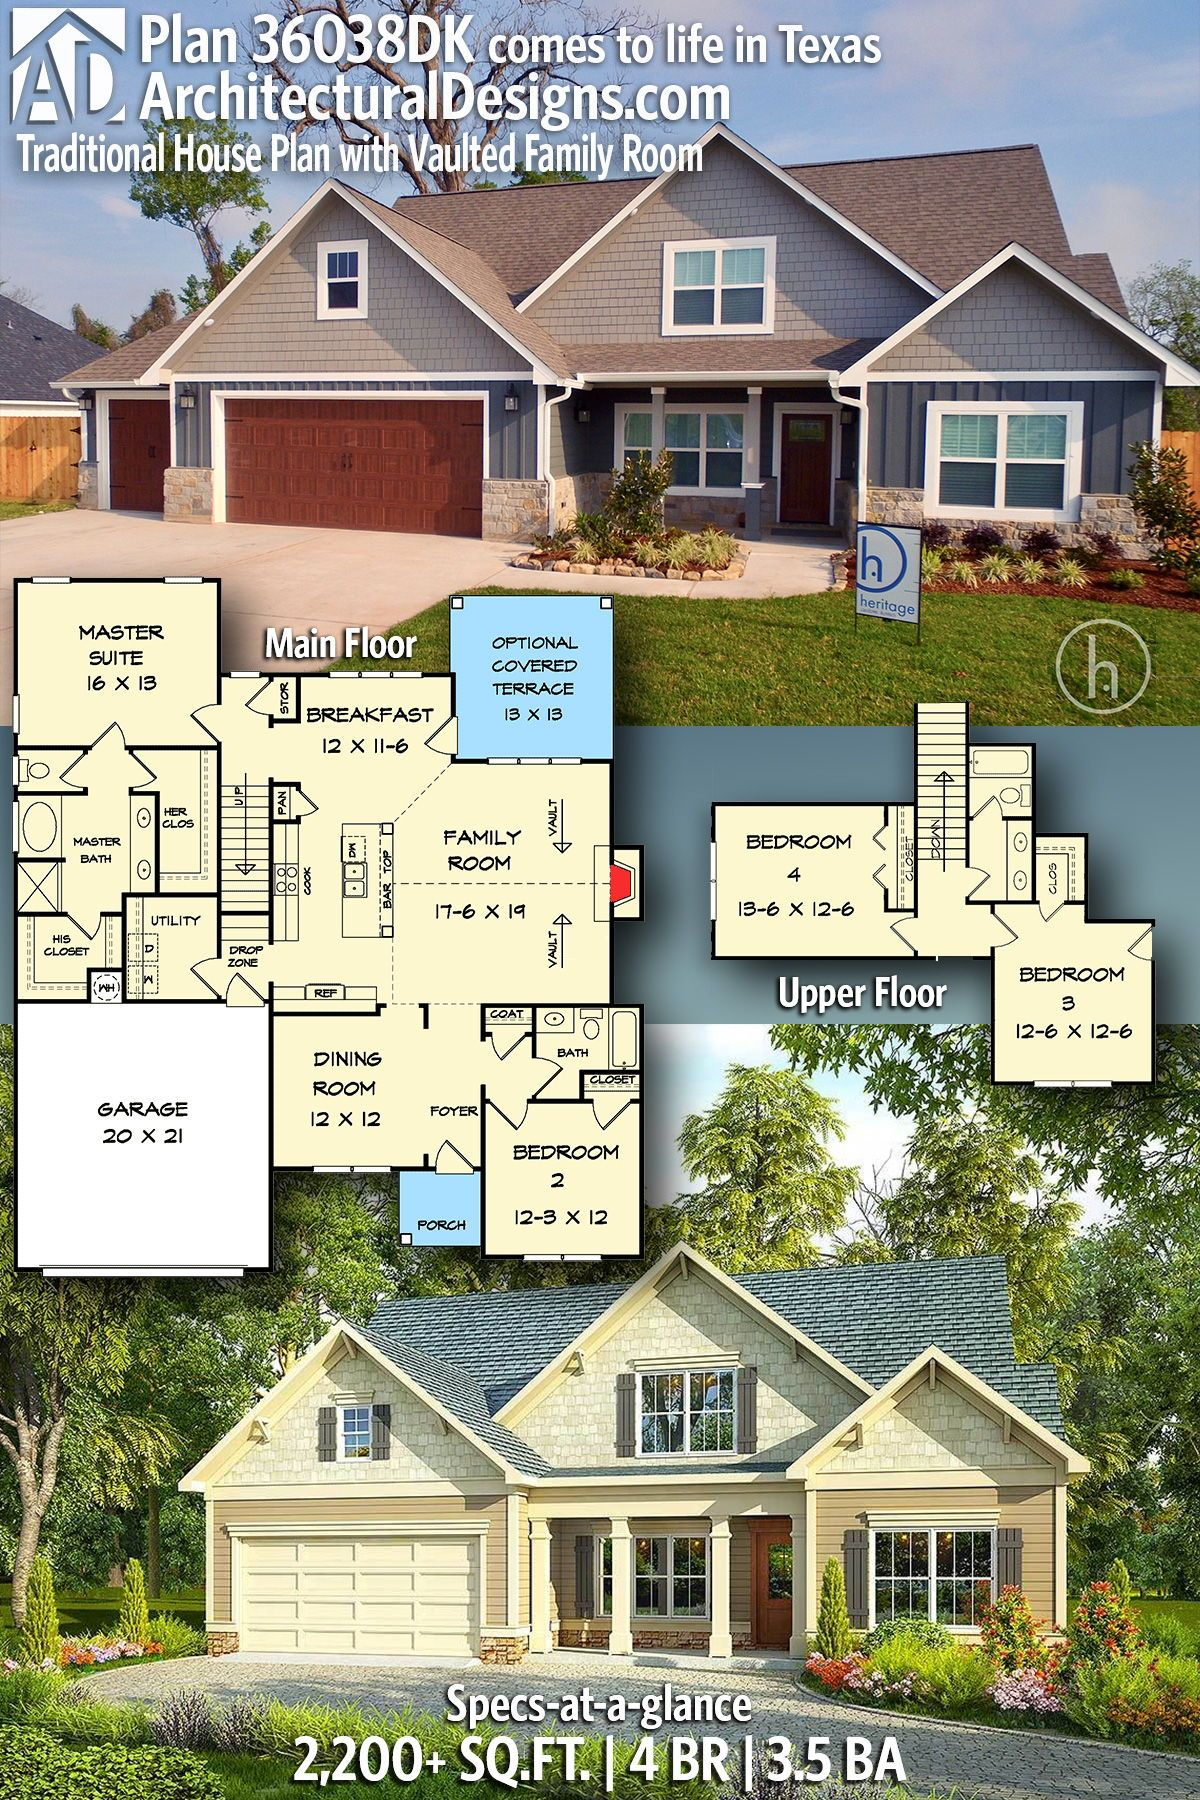 Plan 36038dk Traditional House Plan With Vaulted Family Room House Plans Custom Home Plans Craftsman House Plans